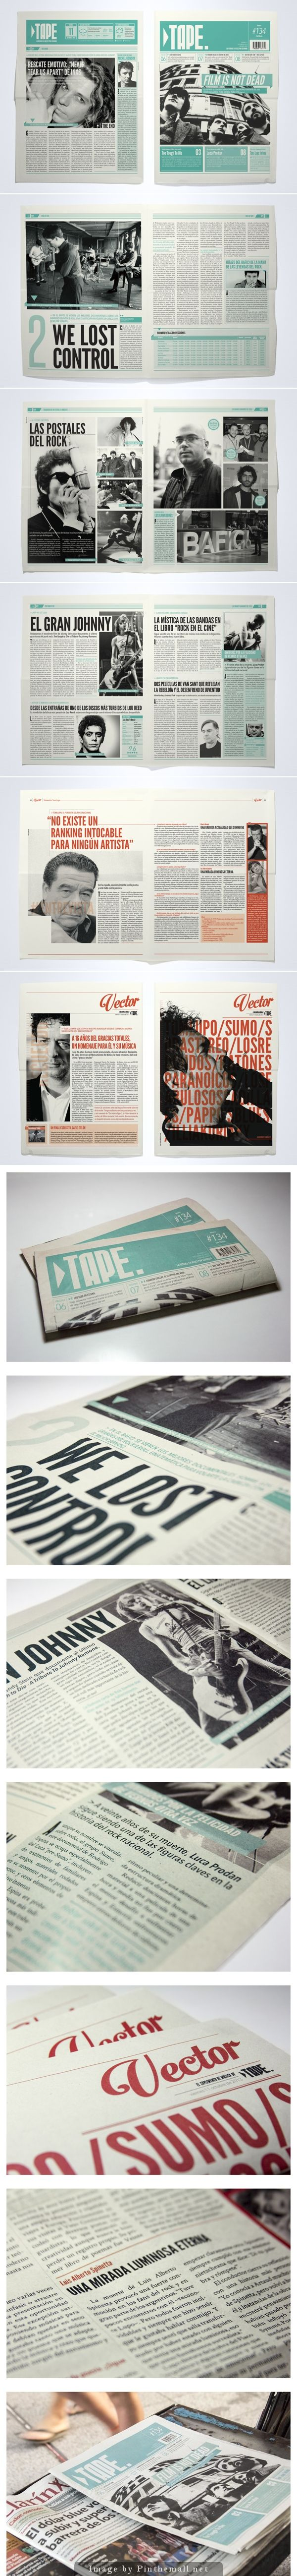 TAPE Newspaper by Juan Ignacio Roldán Nieva